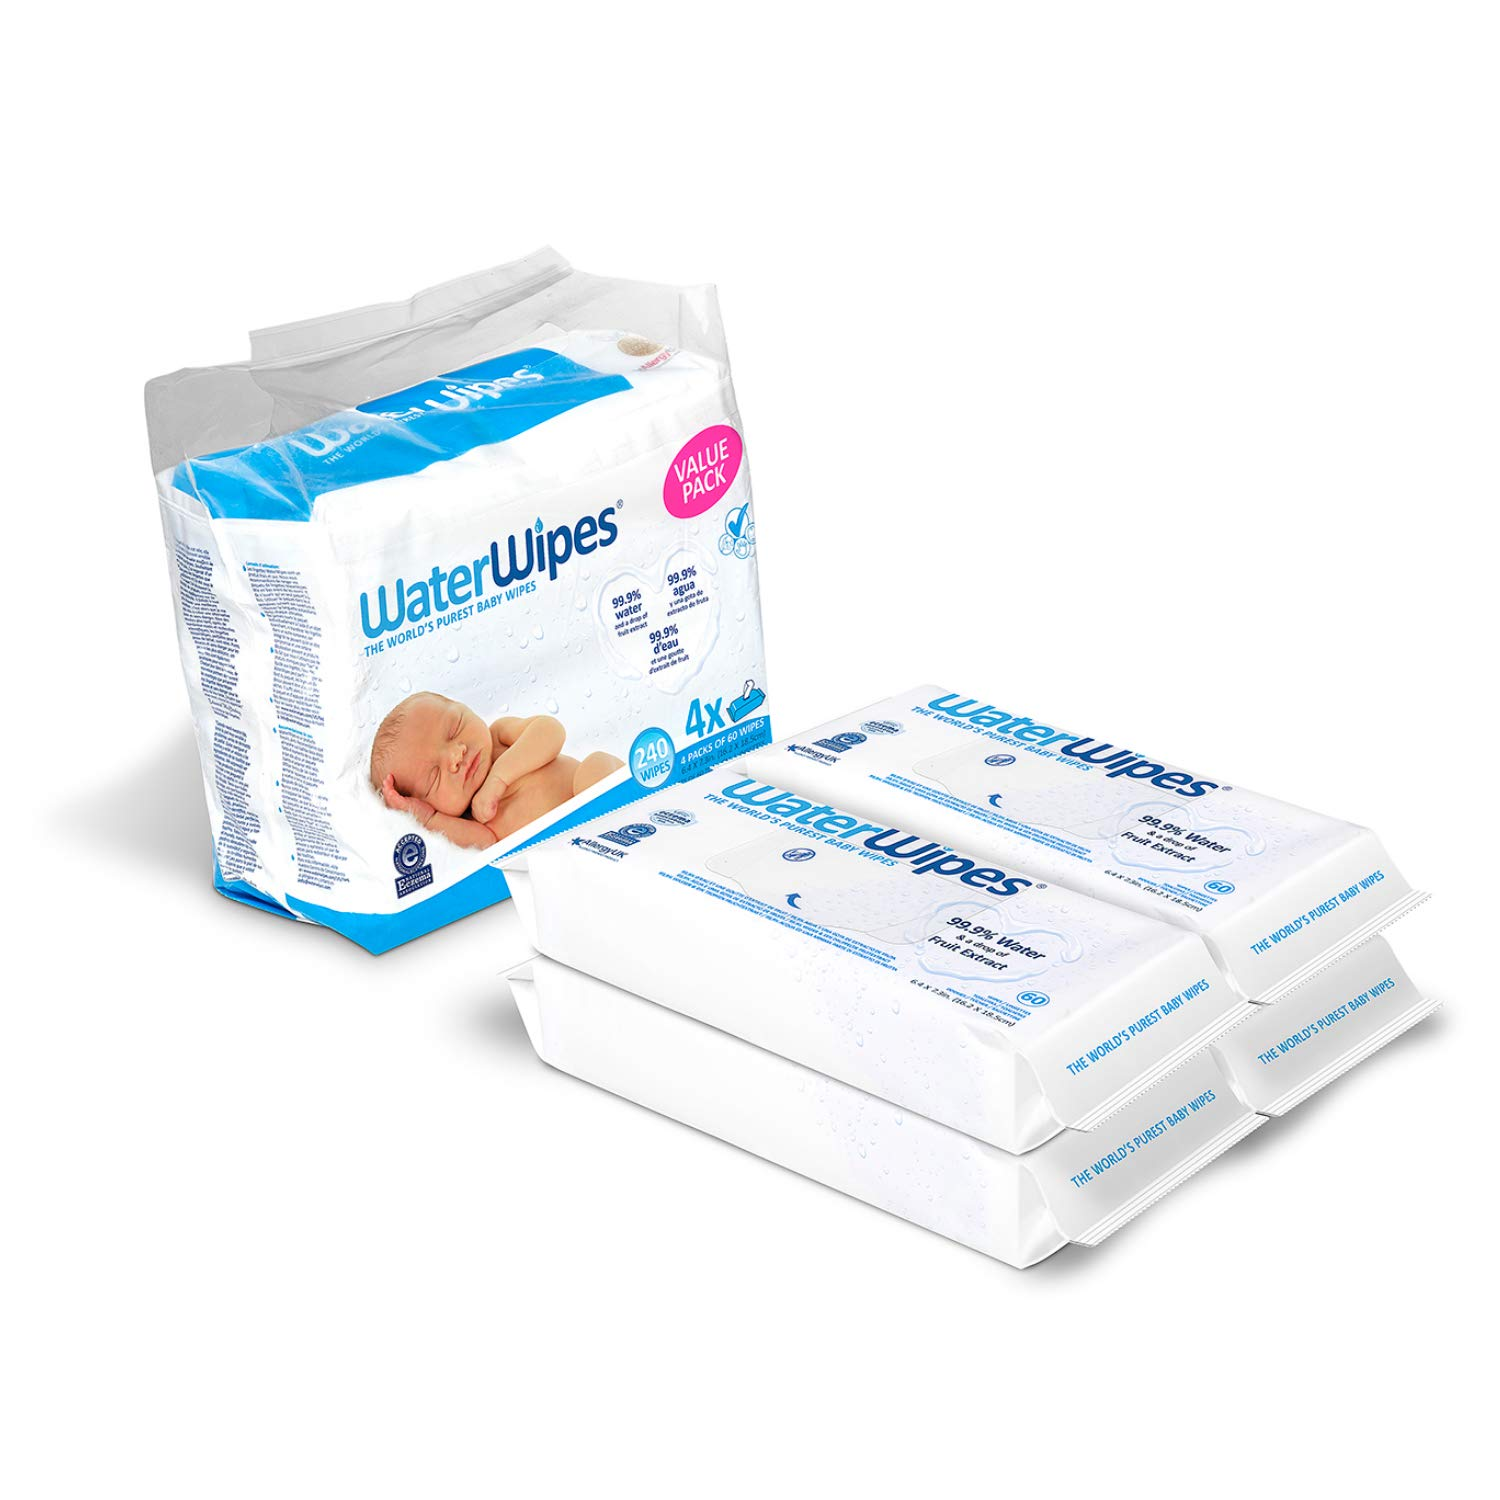 Baby Wipes, WaterWipes Sensitive Baby Diaper Wipes, 99.9% Water, Unscented & Hypoallergenic, for Newborn Skin, 4 Packs (240 Count)